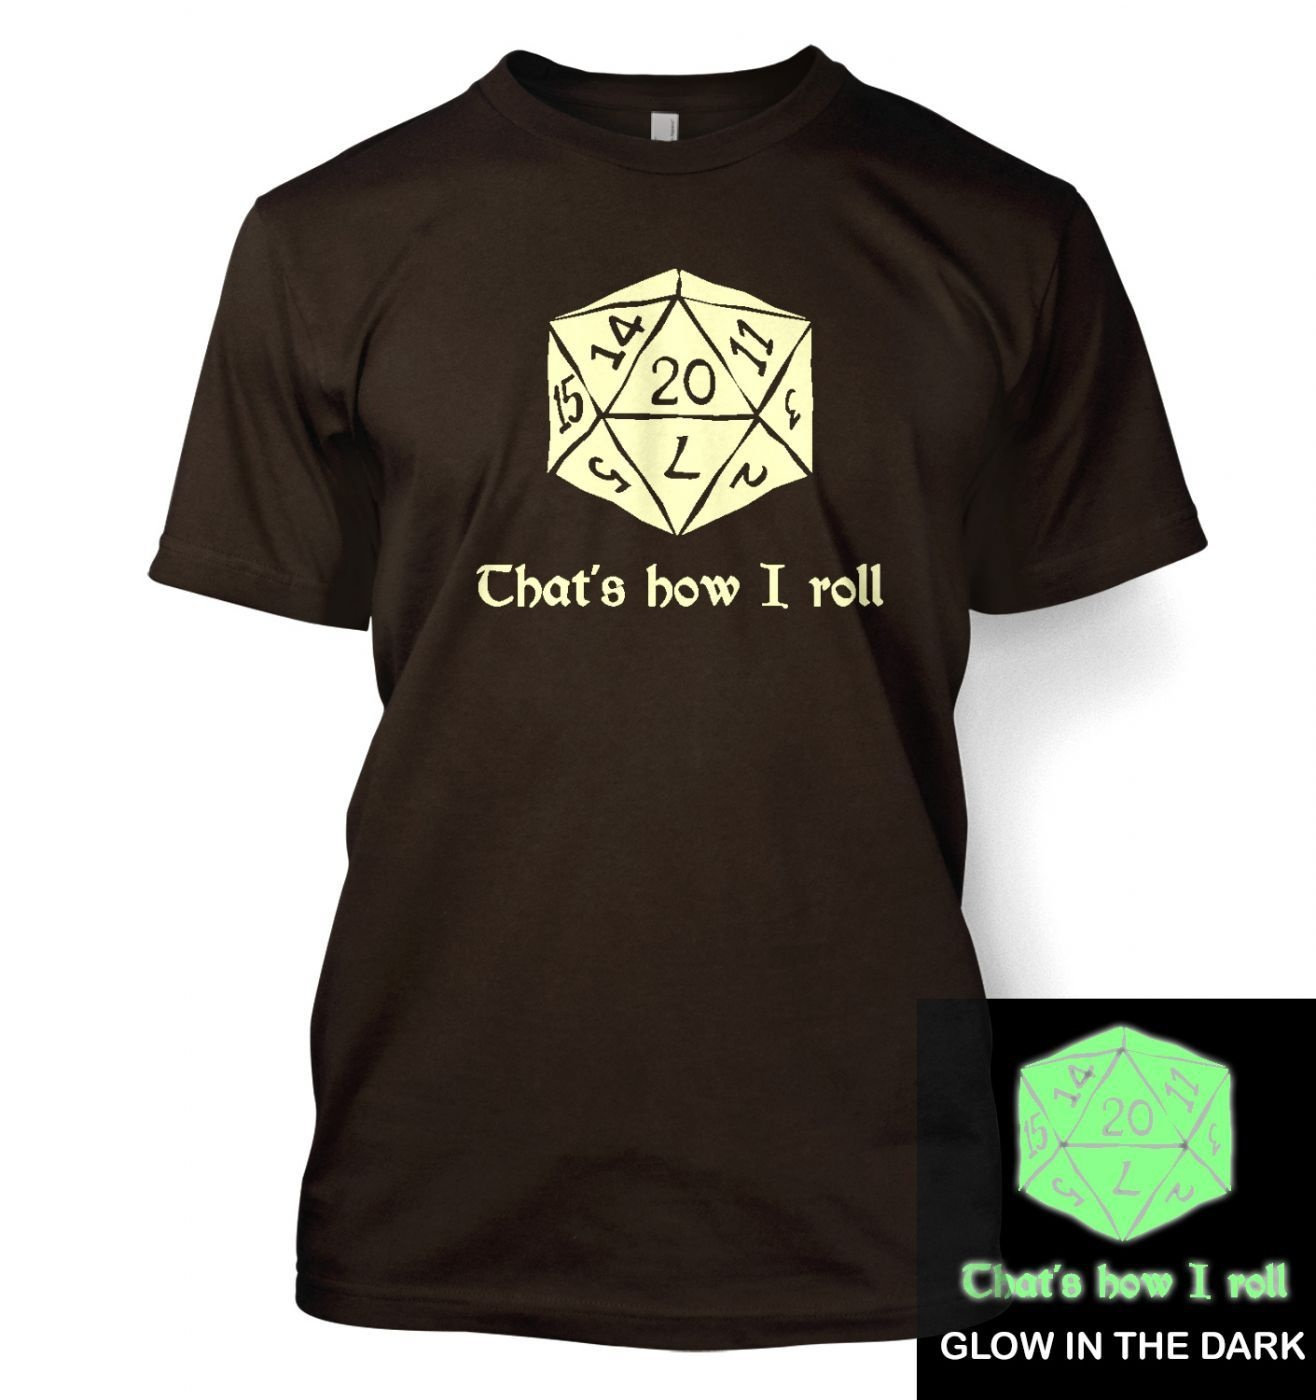 That's How I Roll (glow in the dark) t-shirt